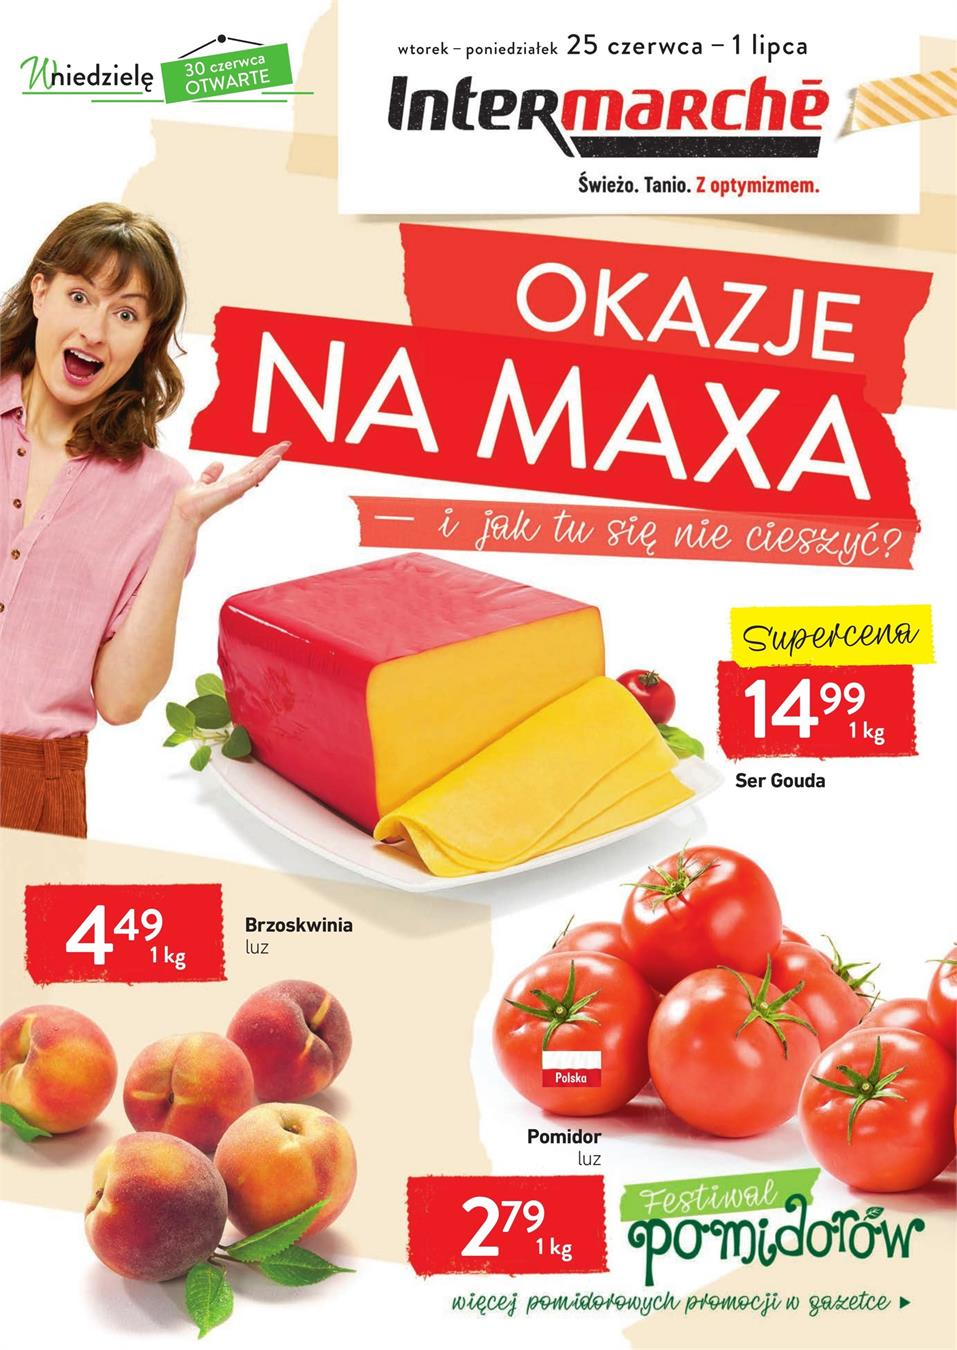 Gazetka SCA PR Polska Sp. z o.o. nr 1 od 2019-06-25 do 2019-07-01